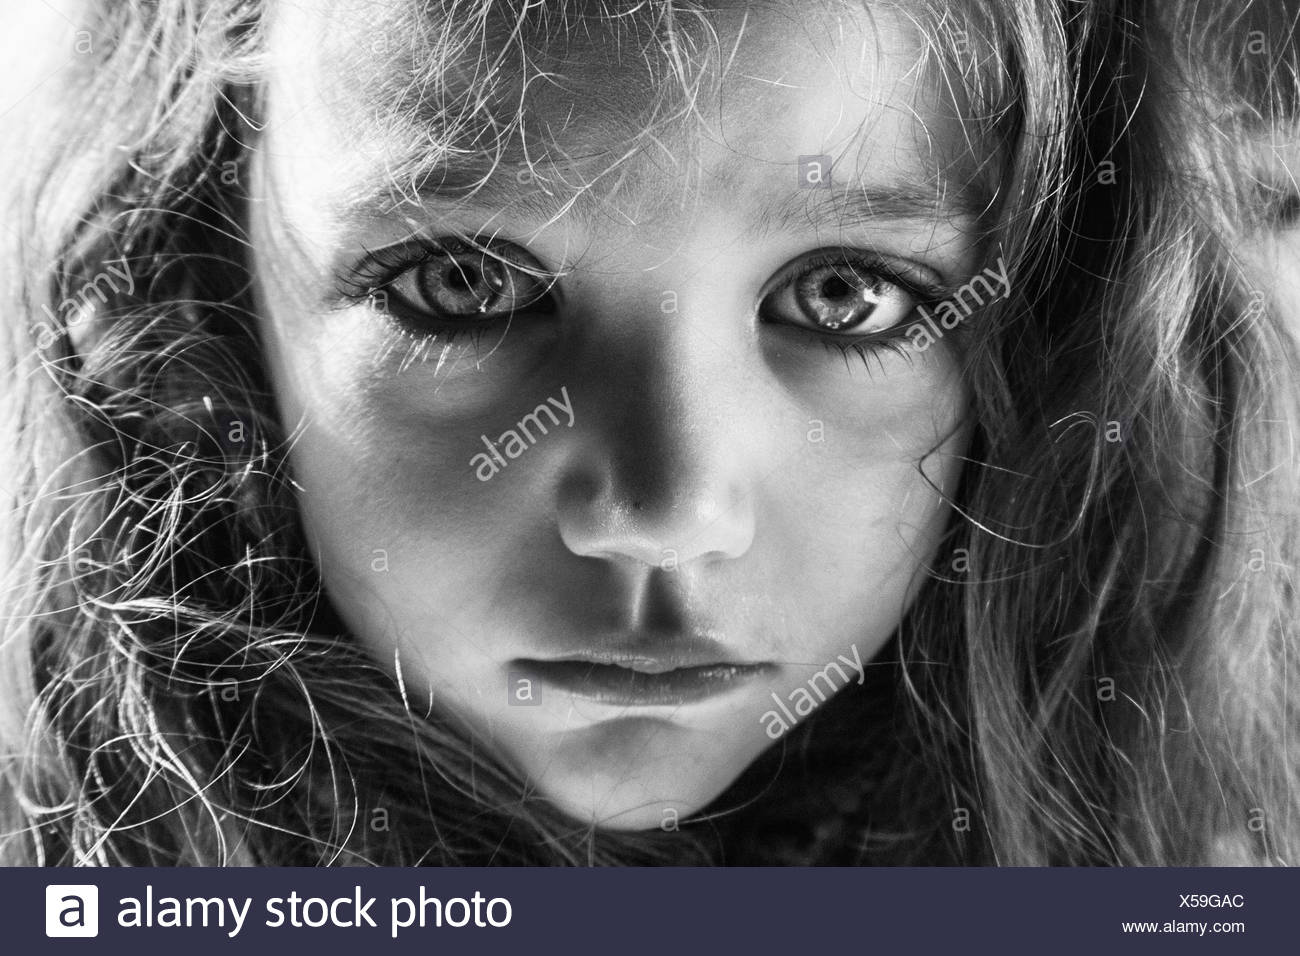 Girl with a tear running down her face - Stock Image